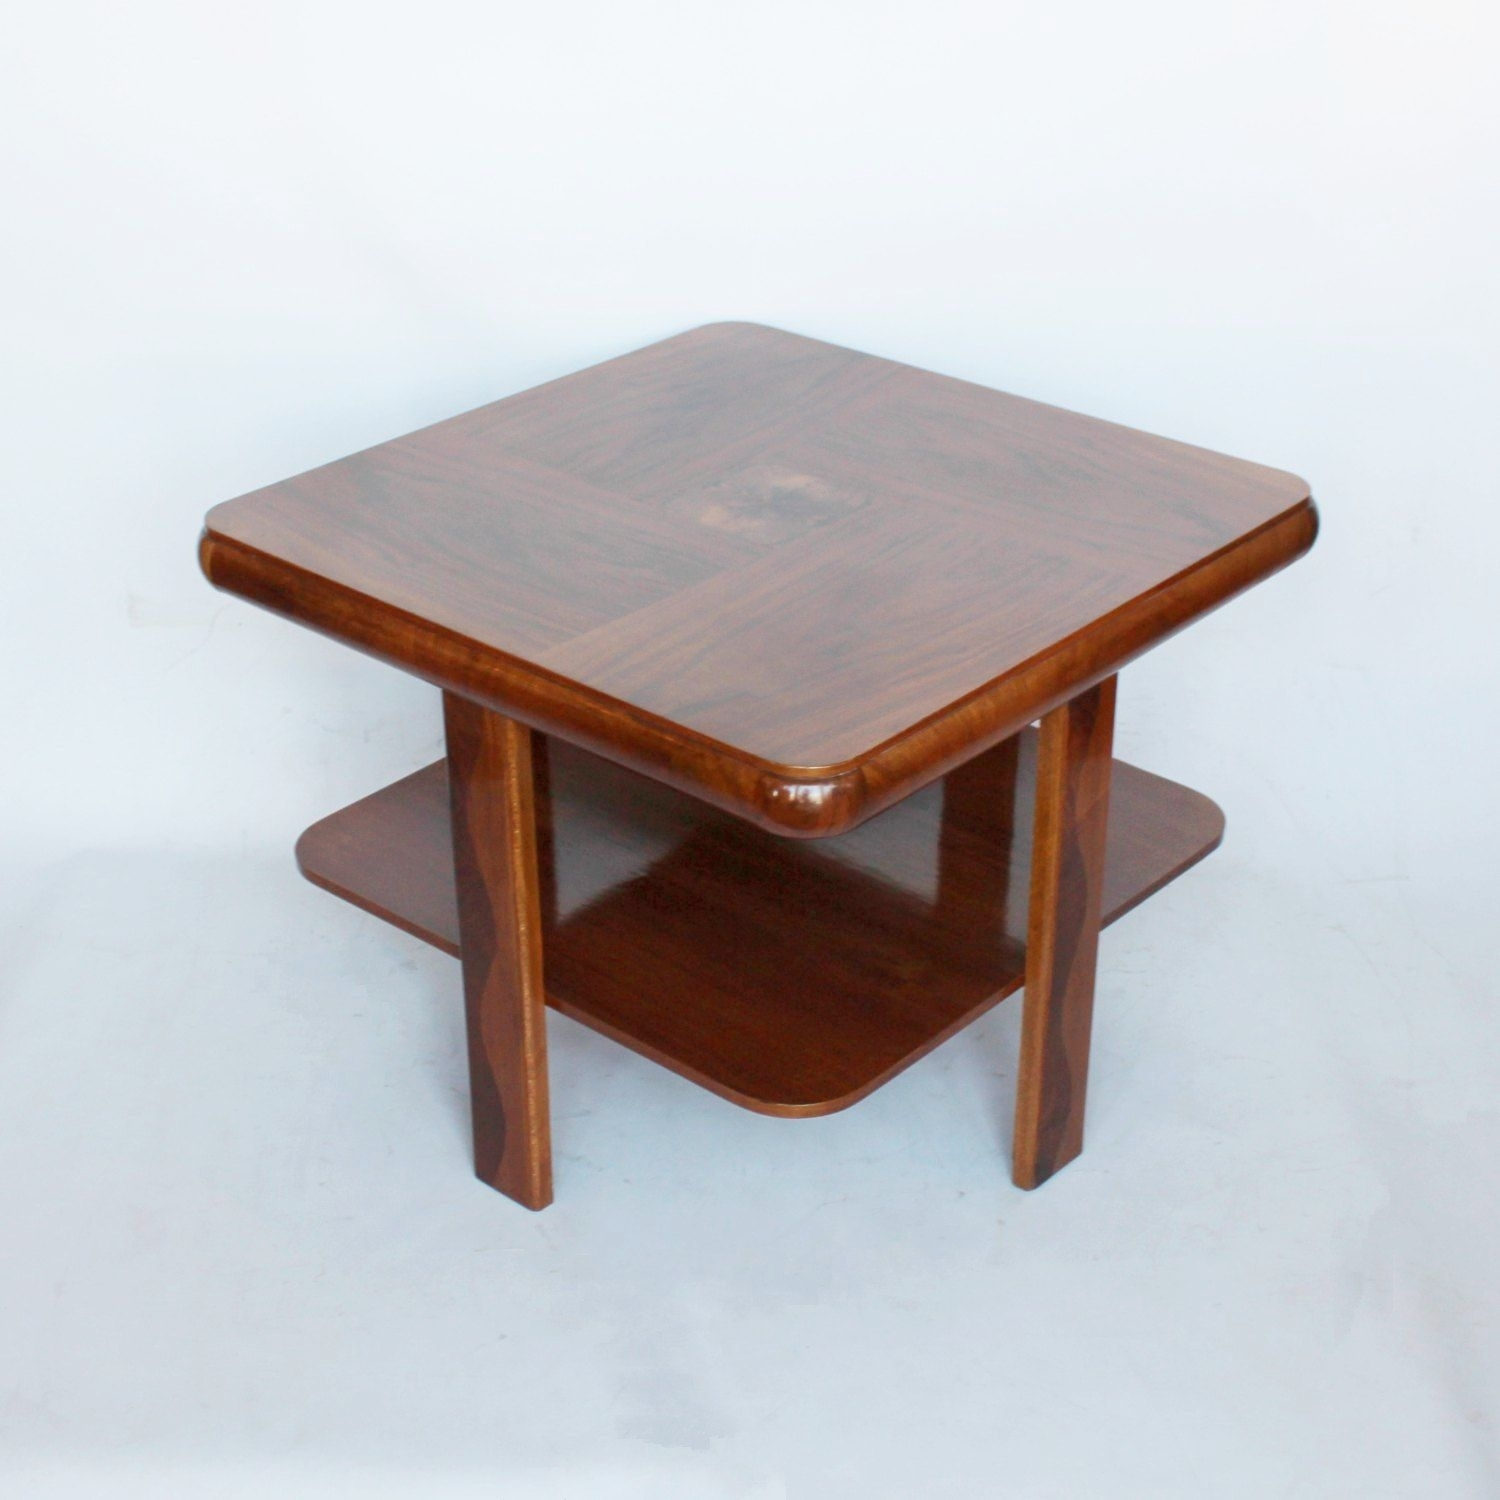 Art Deco Coffee Table (C. 1930 England) From Jeroen Markies Art Deco regarding Antiqued Art Deco Coffee Tables (Image 13 of 30)